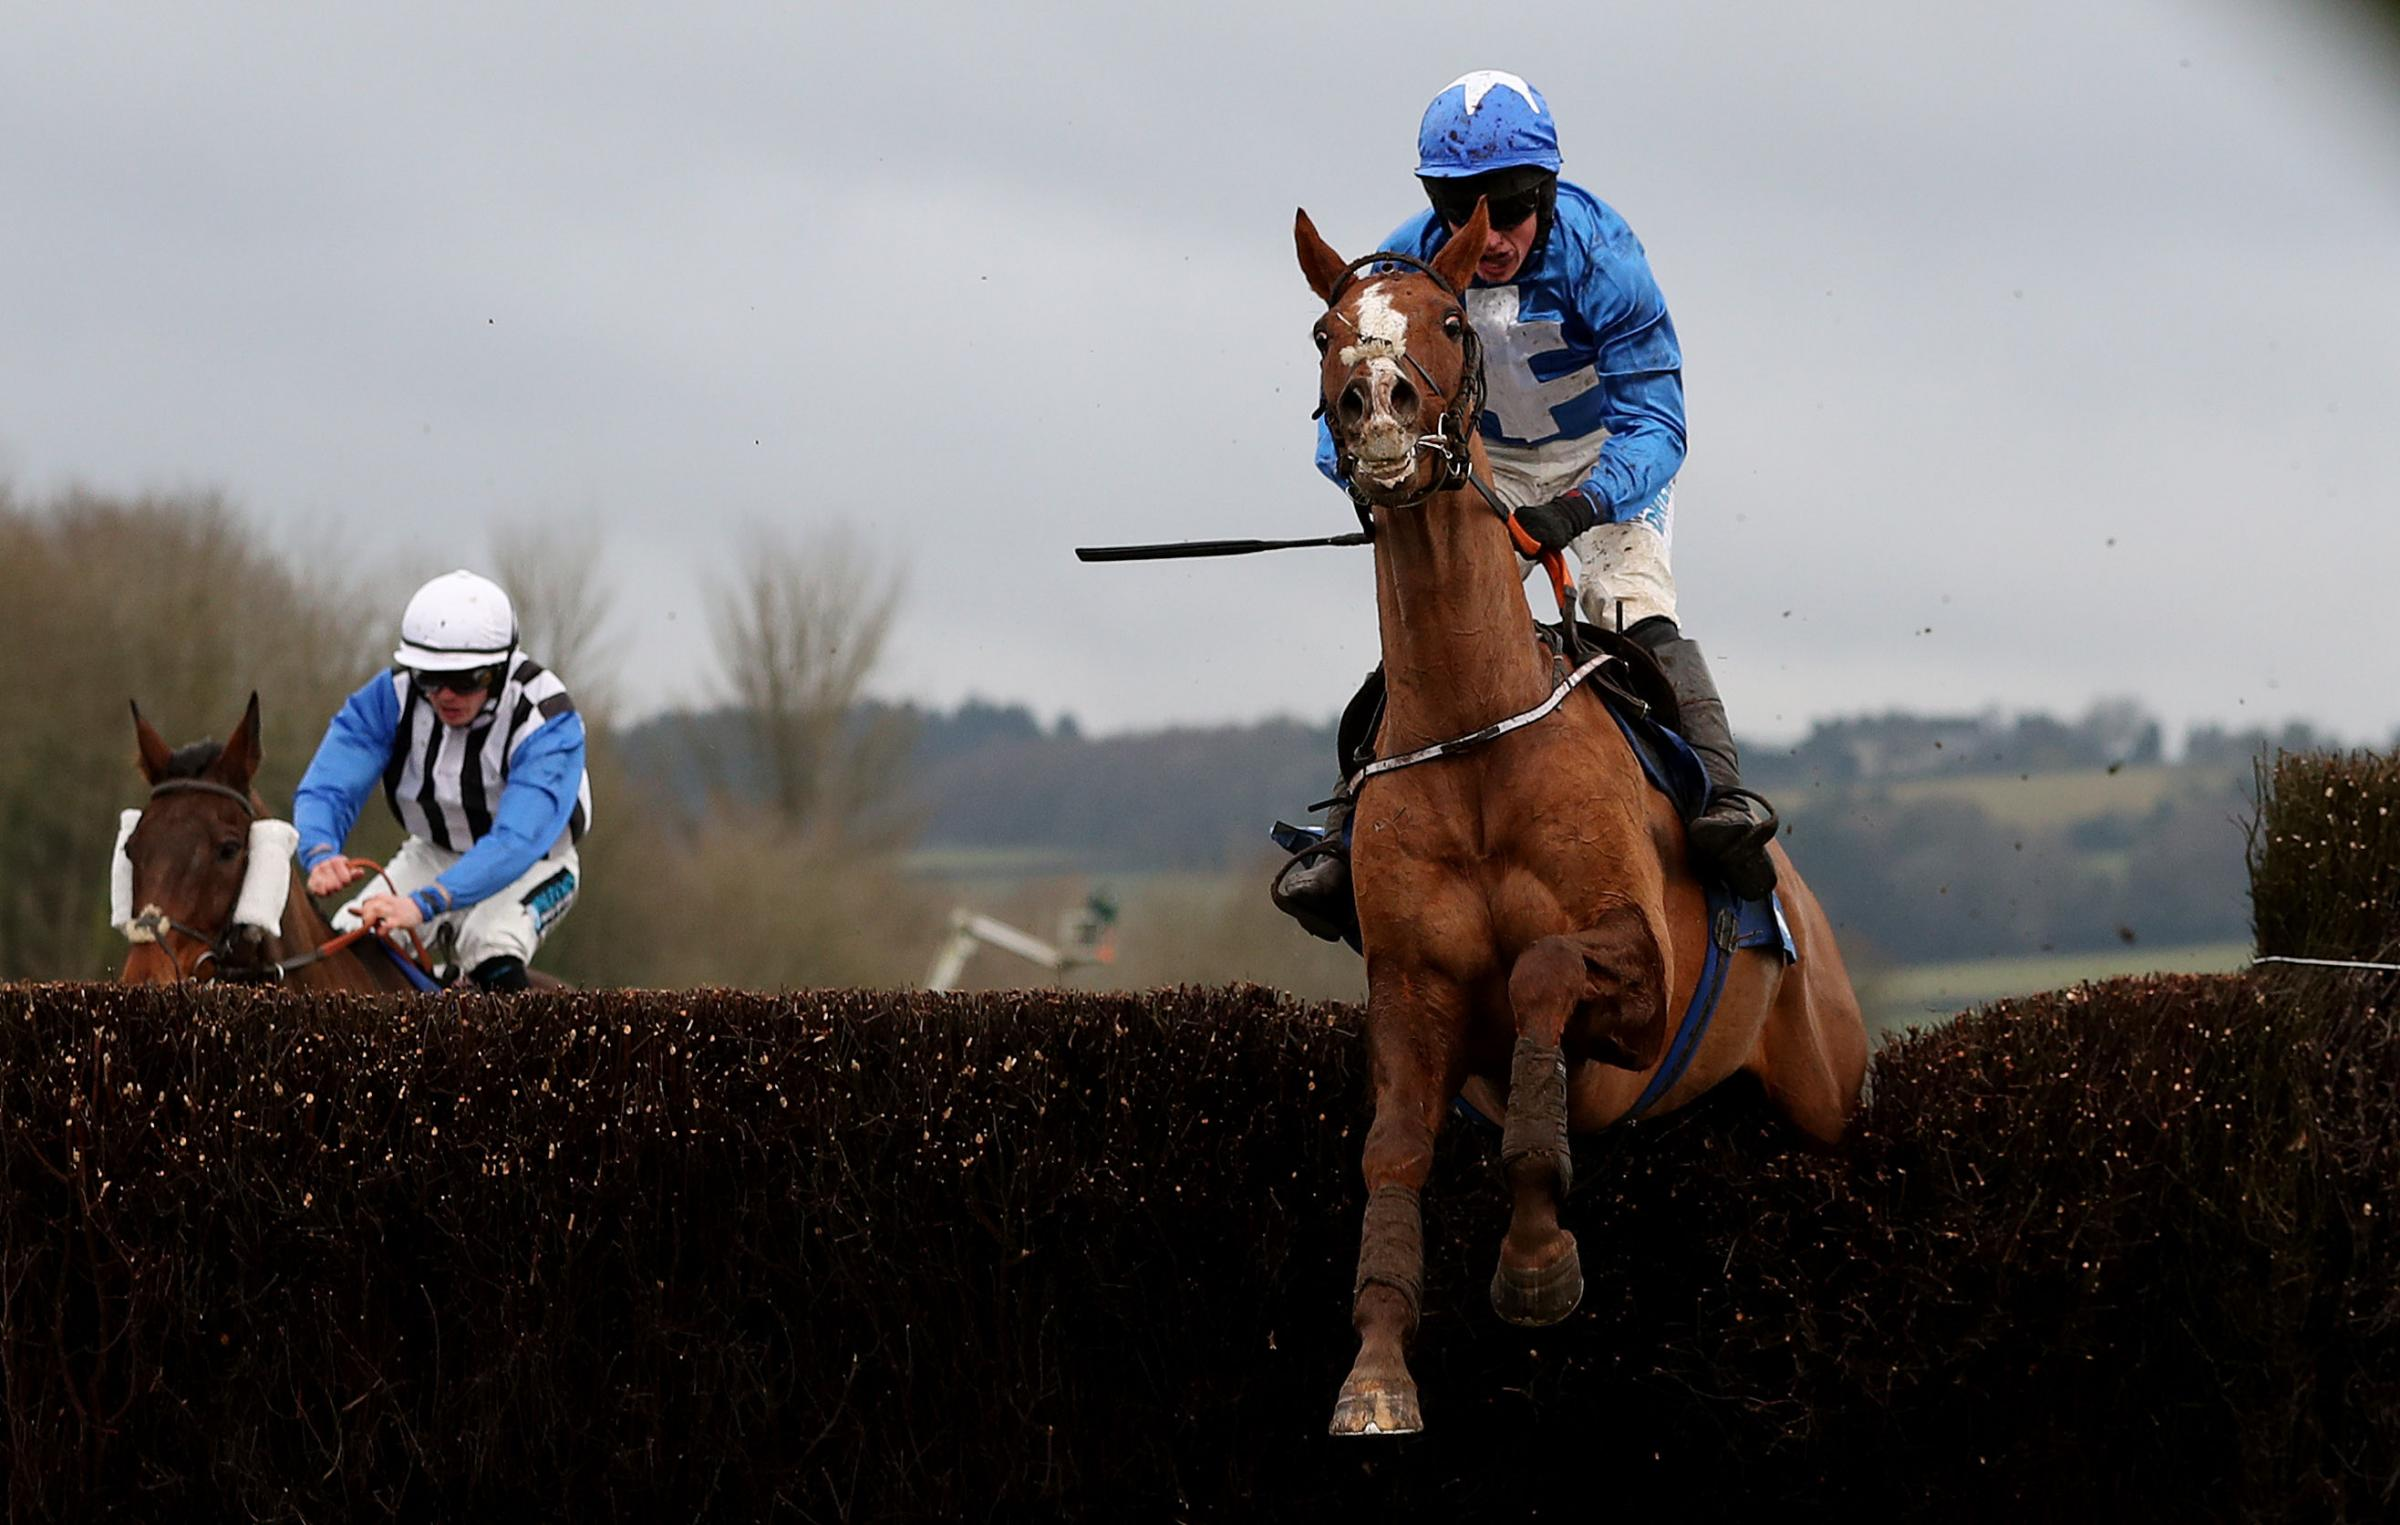 CHEPSTOW CHARGE: James Bowen guides Raz De Maree to victory at Chepstow. Picture: PA Wire